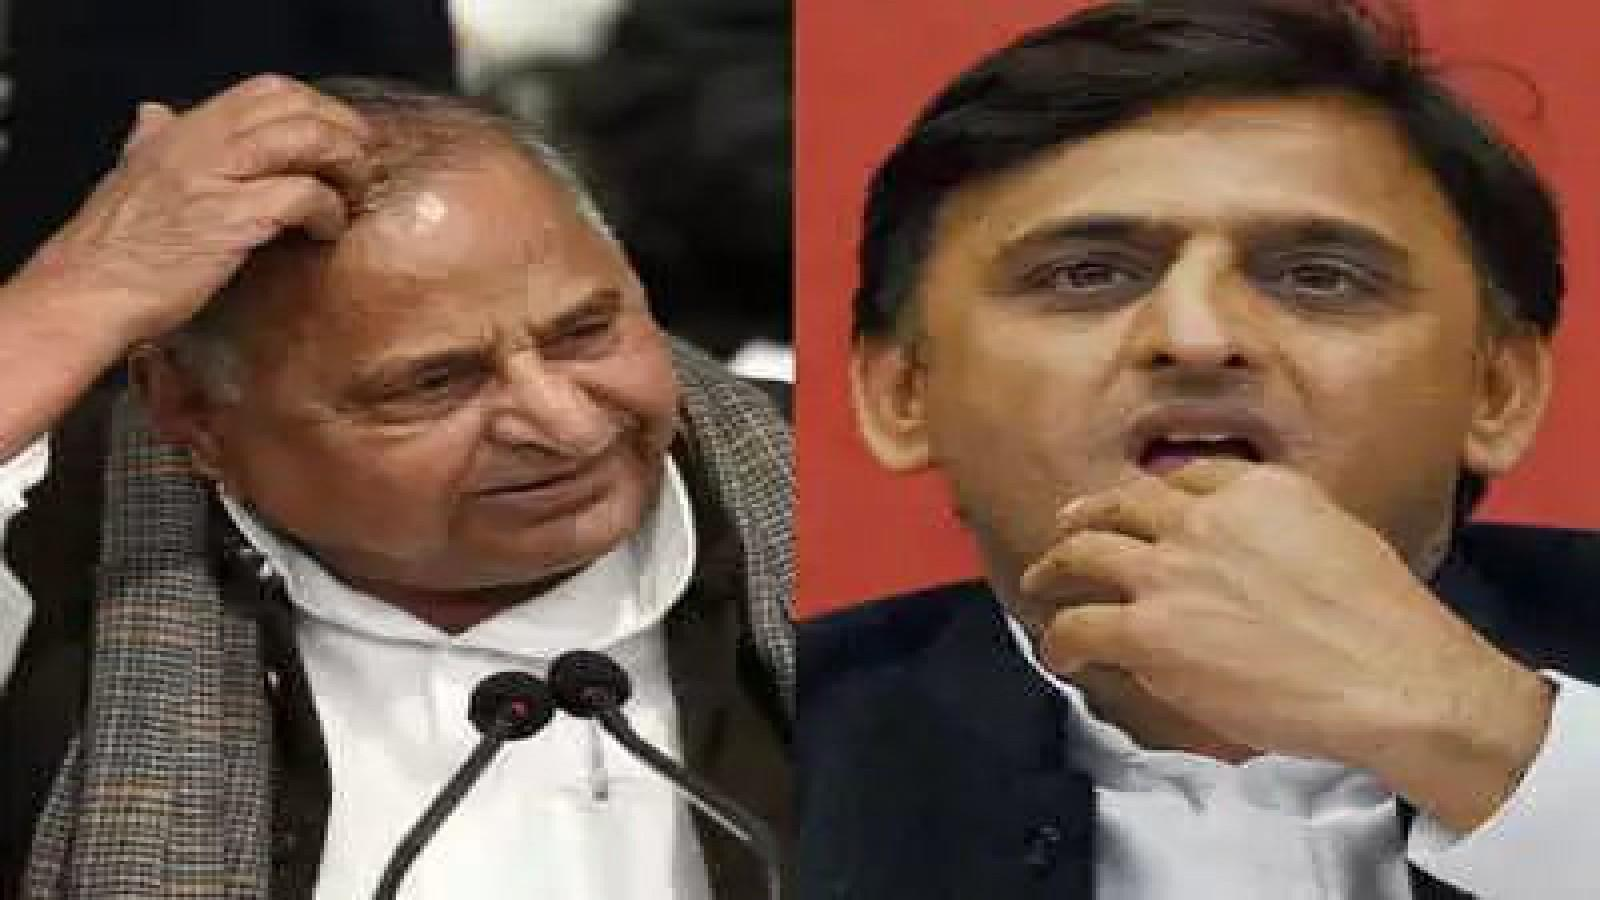 cbi-gives-clean-chit-to-akhilesh-mulayam-yadav-in-disproportionate-assets-case